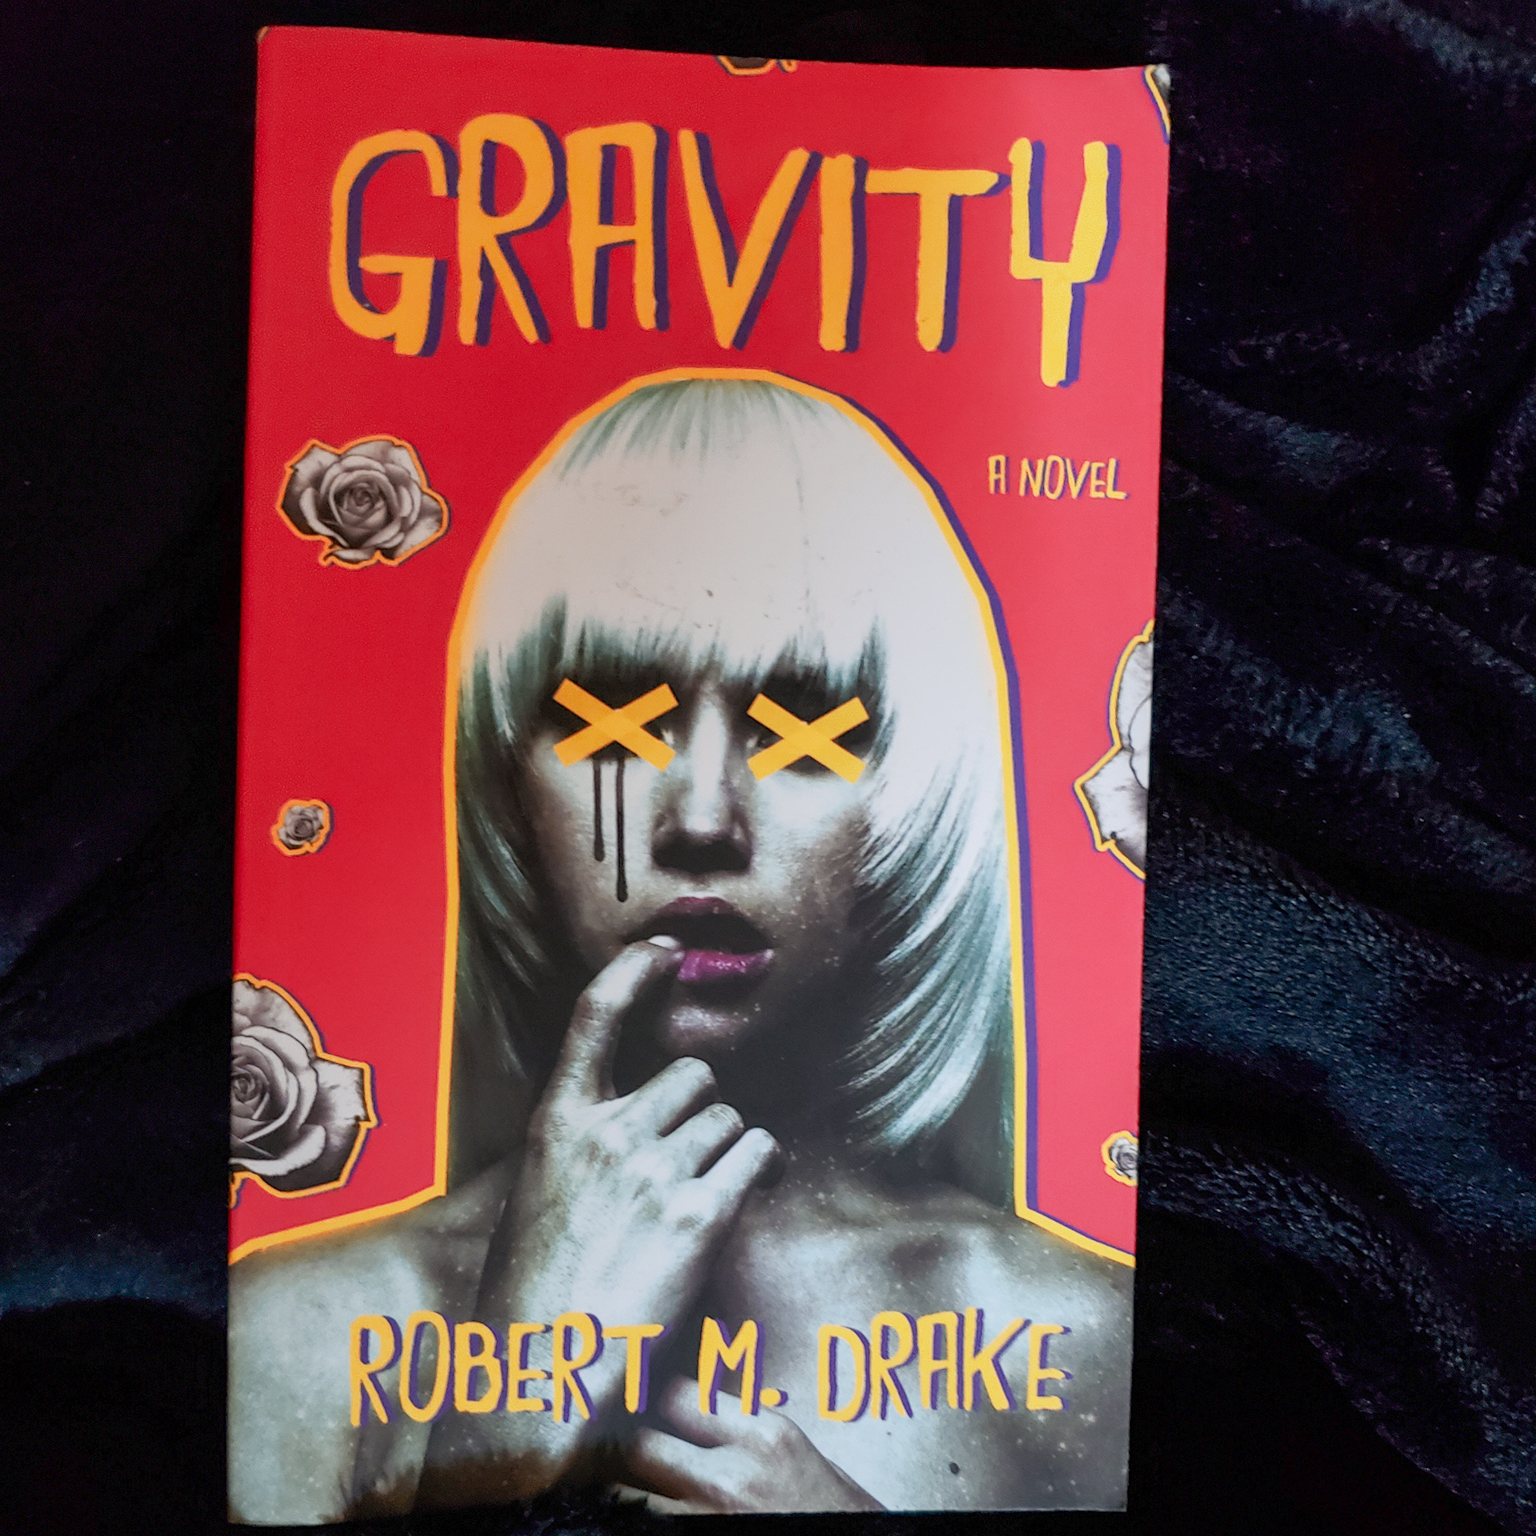 A photo of my friend's copy of Gravity by Robert M. Drake.